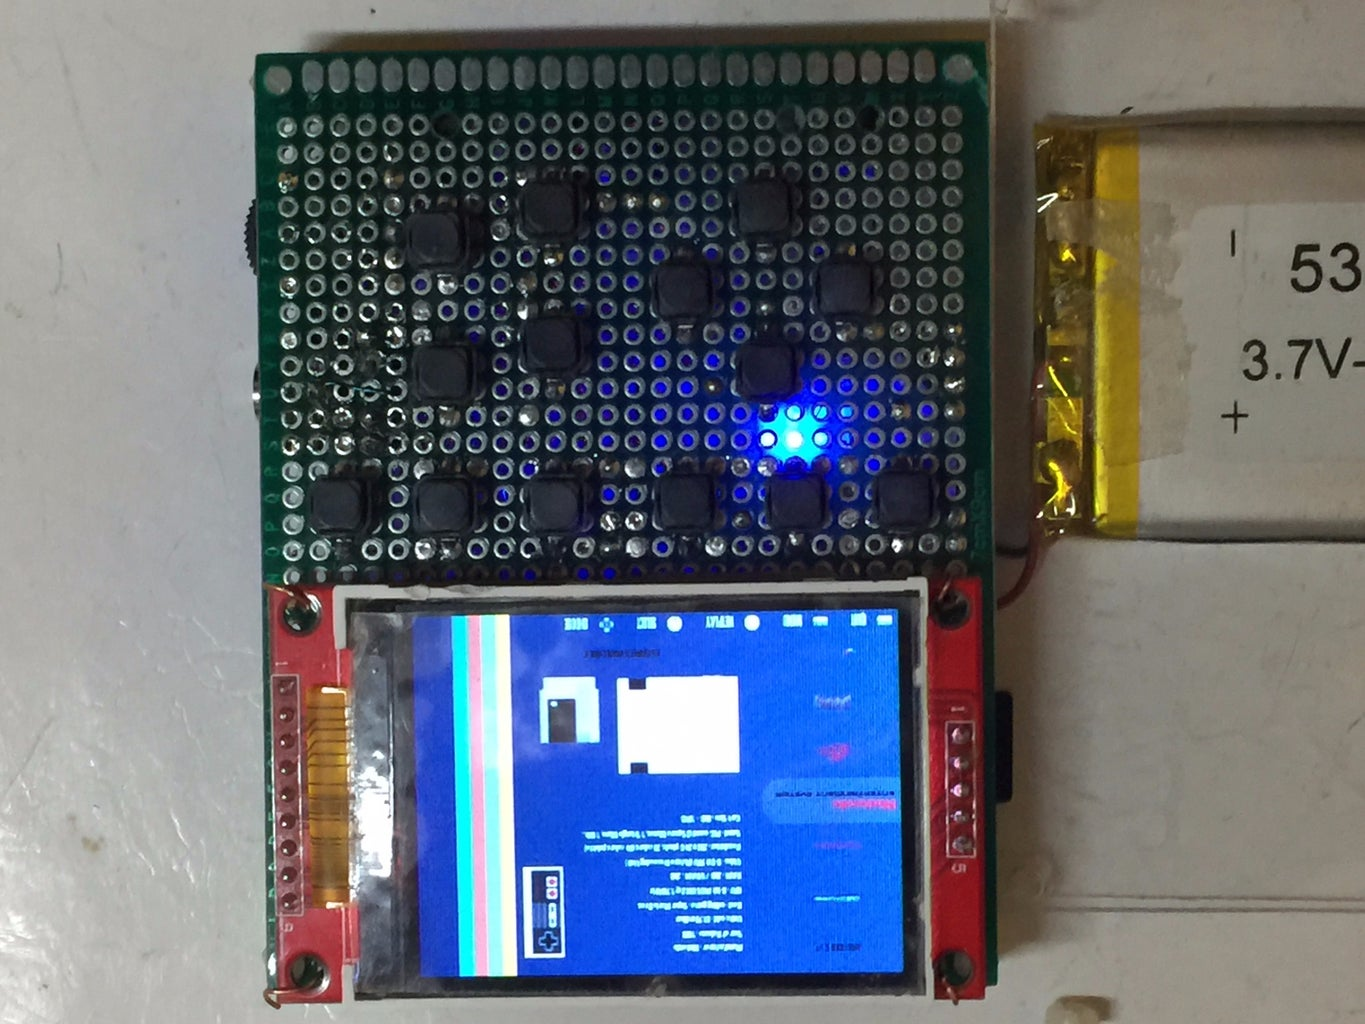 E. Modify Recalbox Configurations for TFT Screen and Speakers.